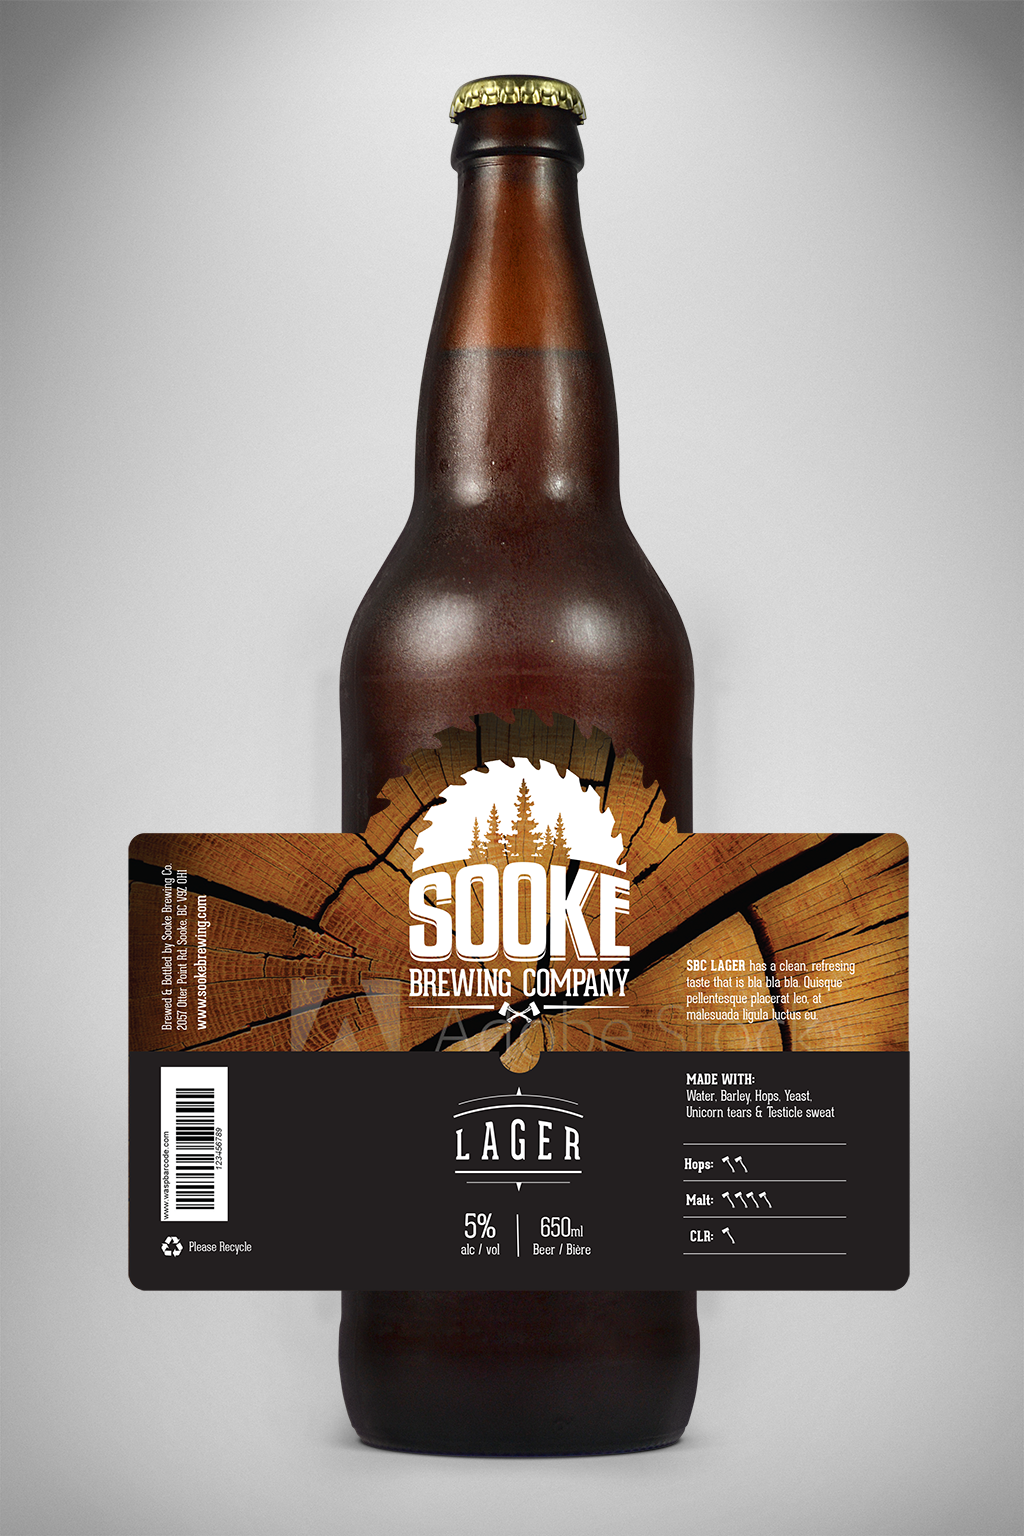 Sooke Brewing